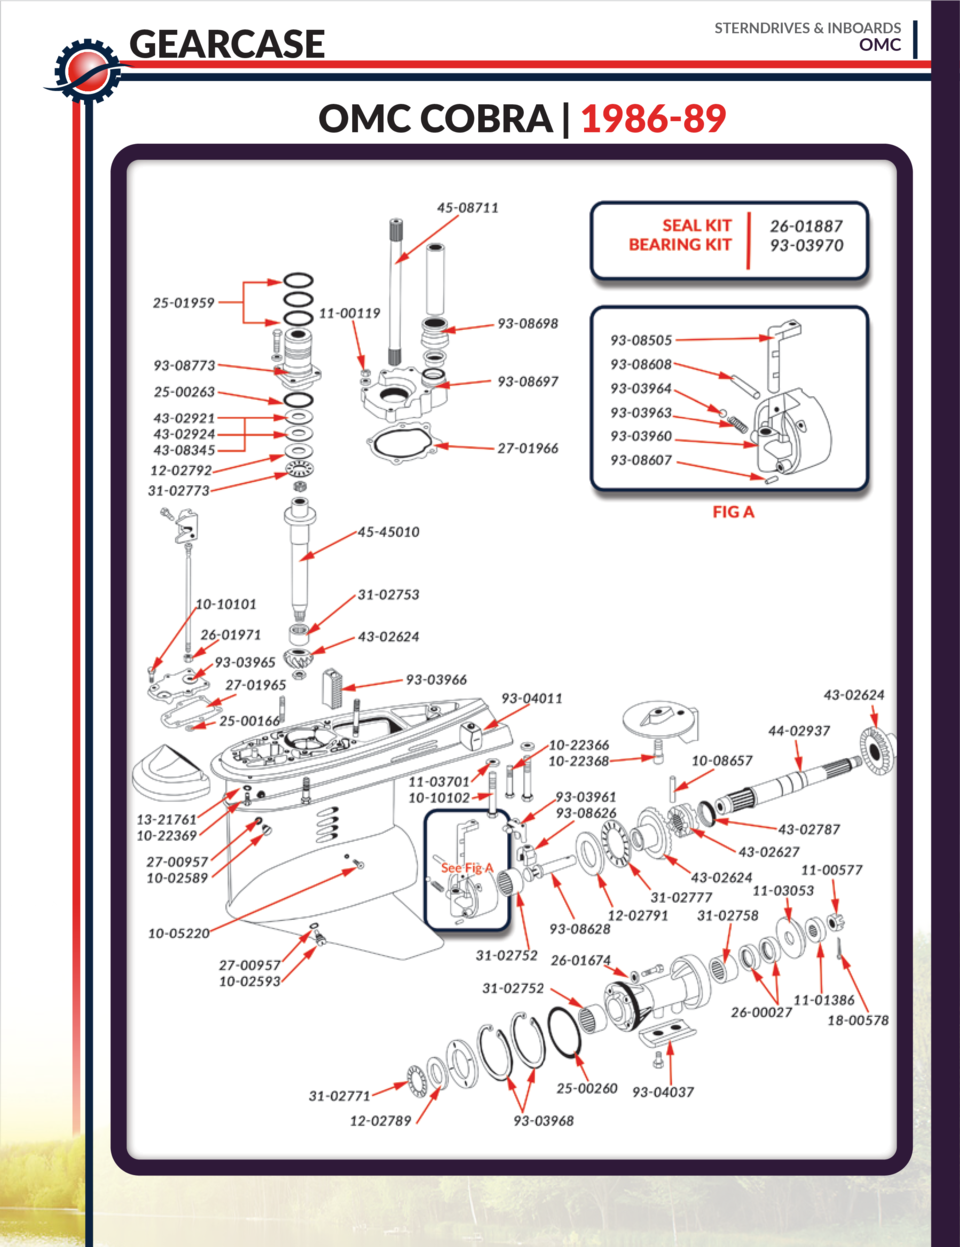 1989 omc 305 inboard wiring diagram omc catalog emp engineered marine products  omc catalog emp engineered marine